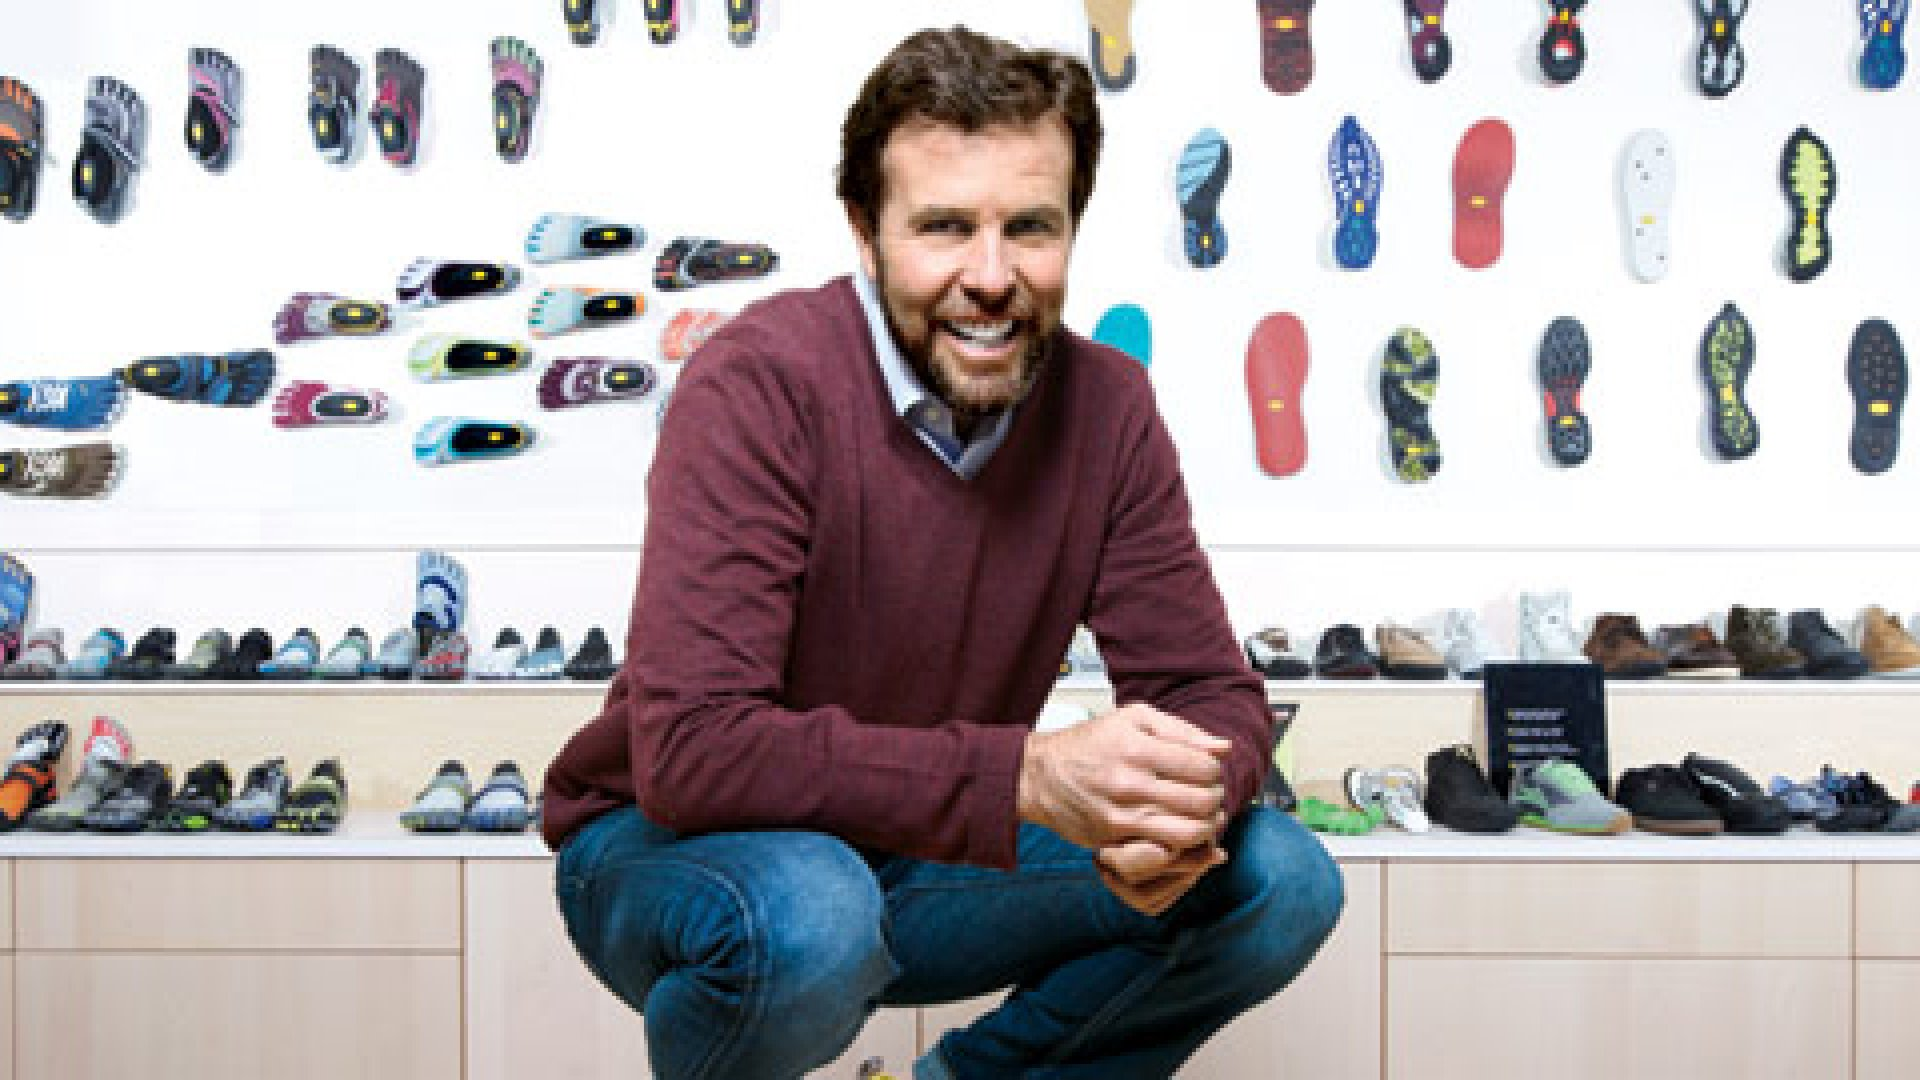 <b>The Real Thing</b> Tony Post was inundated by fake FiveFingers.